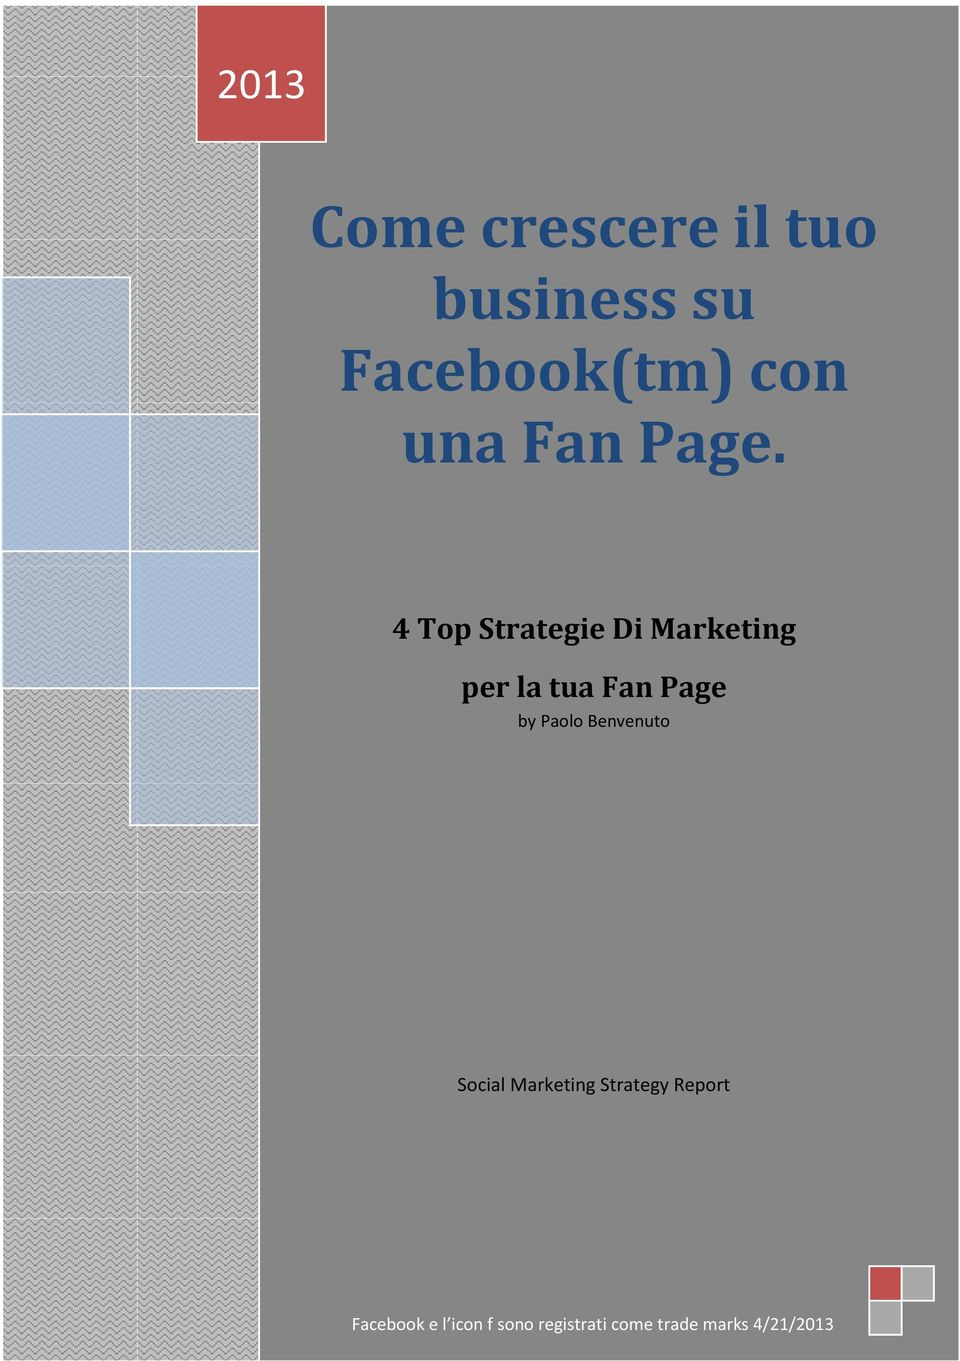 4 Top Strategie Di Marketing per la tua Fan Page by Paolo